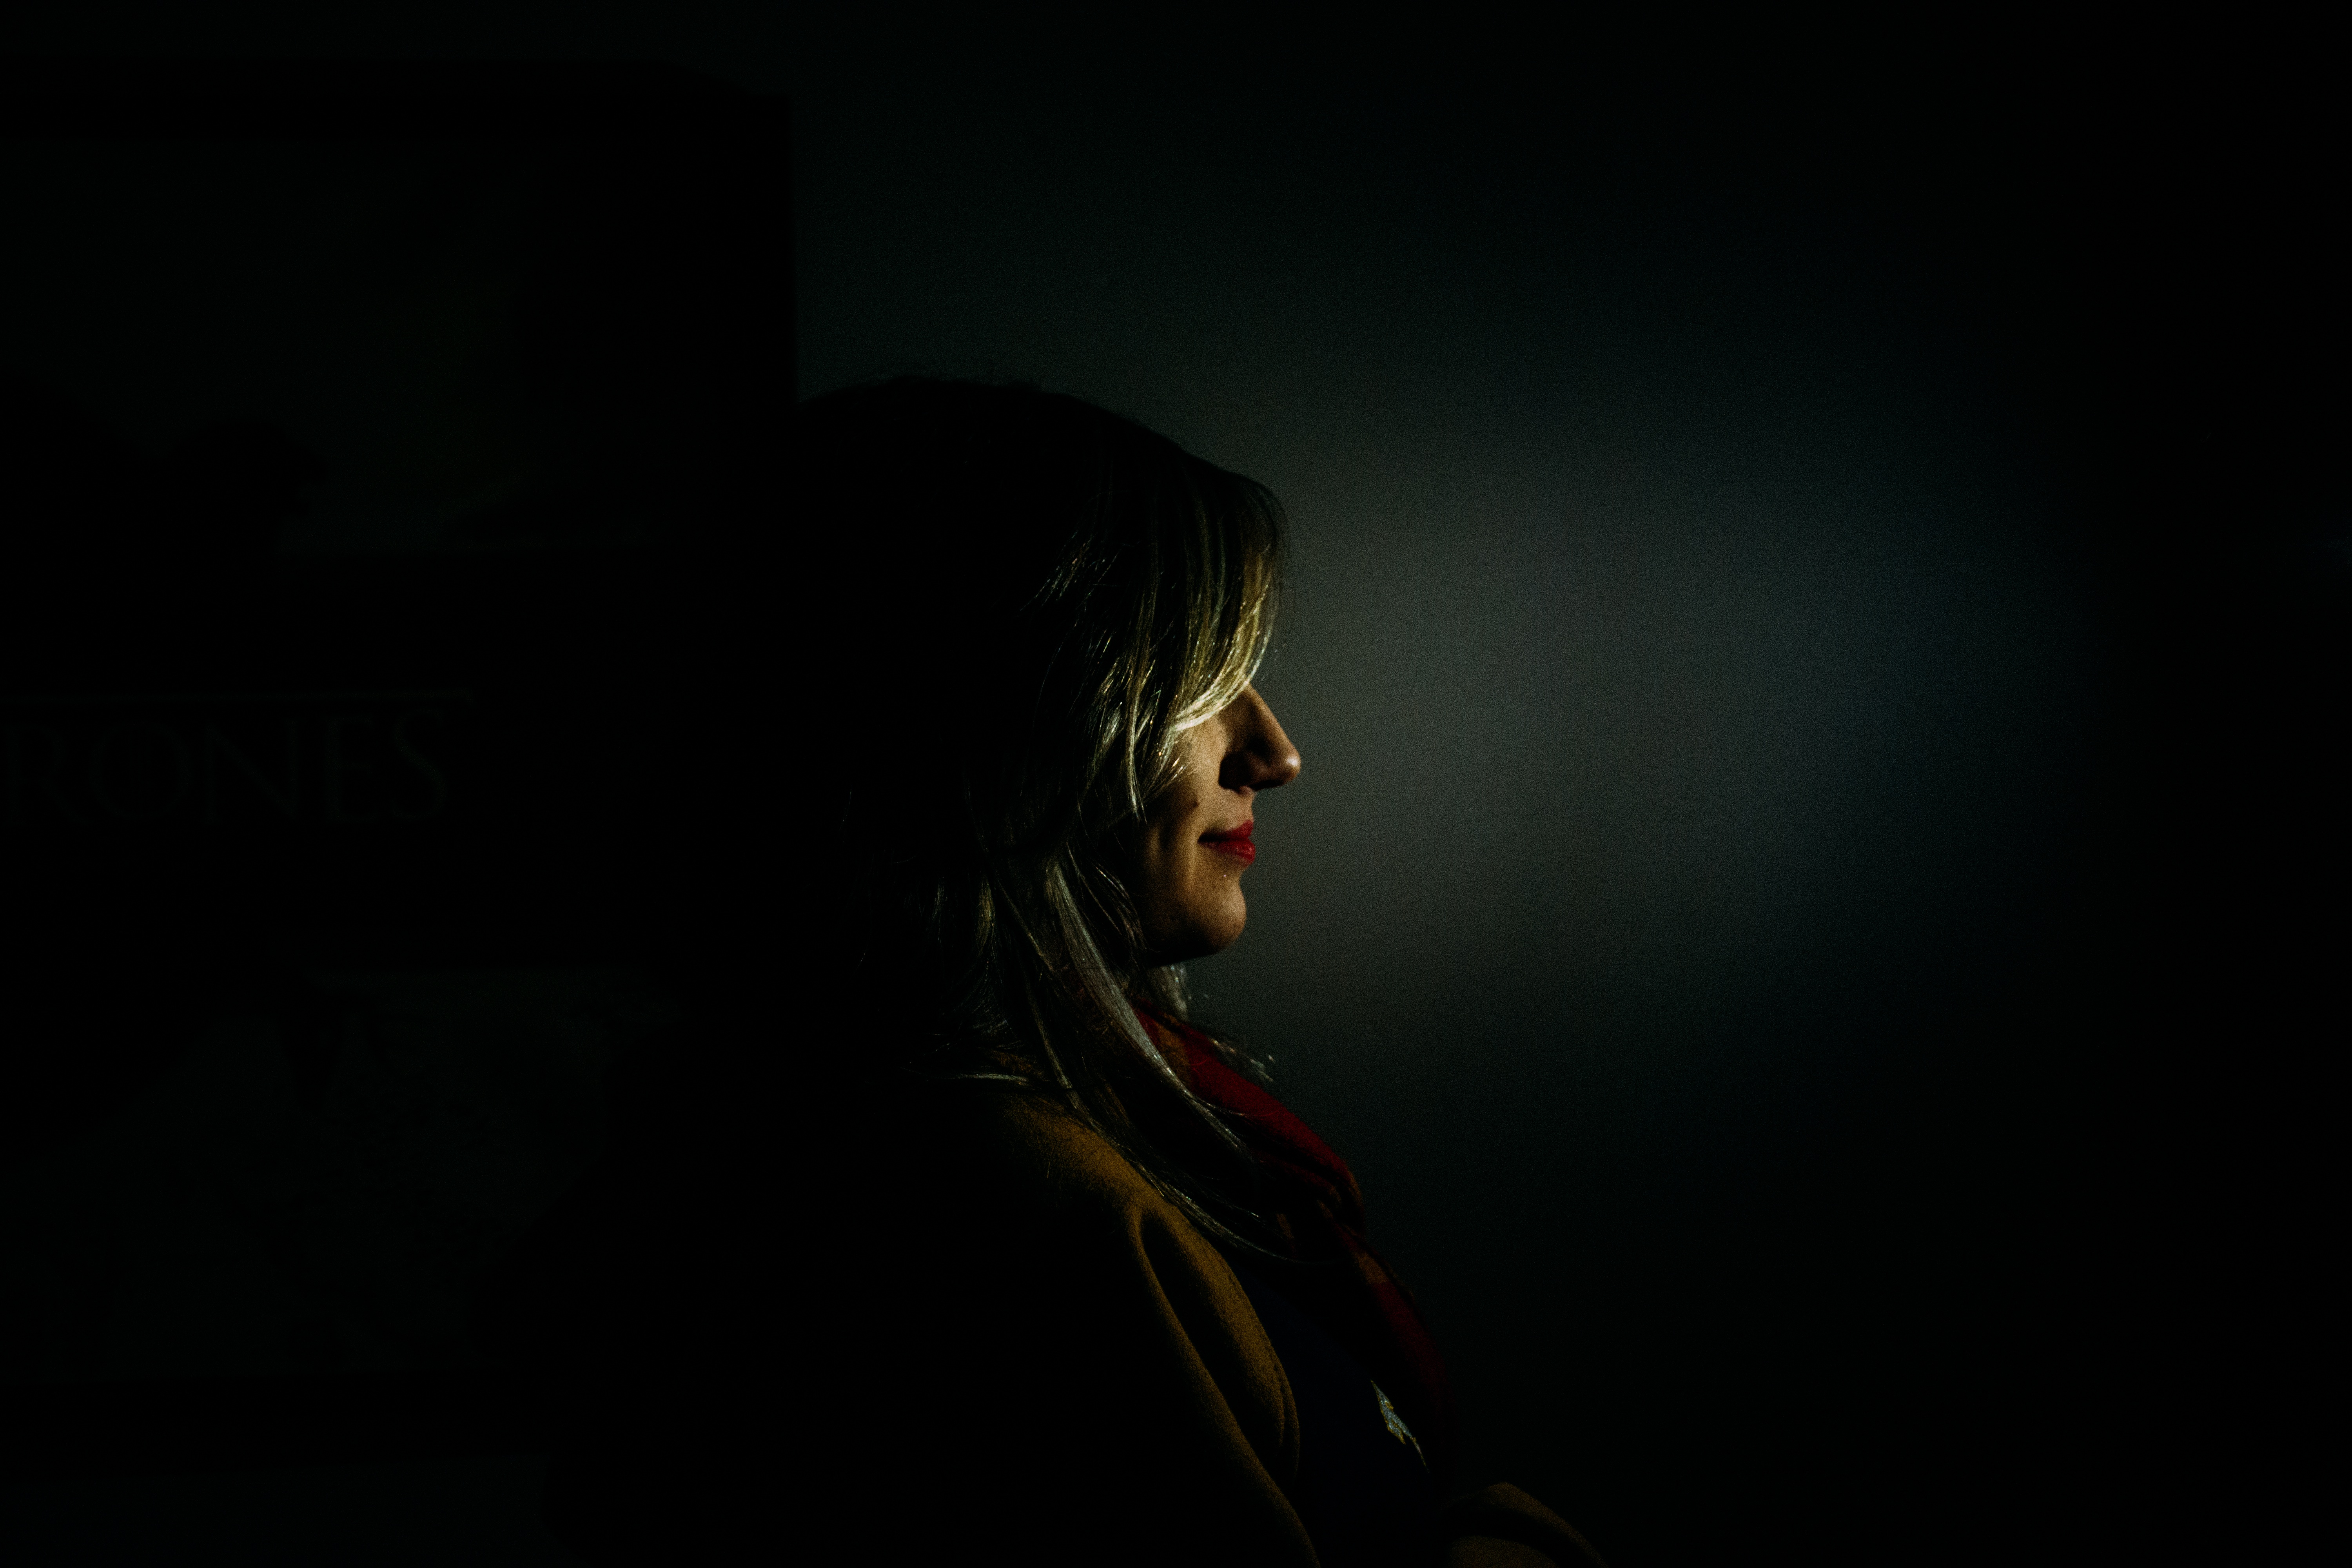 Woman with Half Smile Standing in the Dark